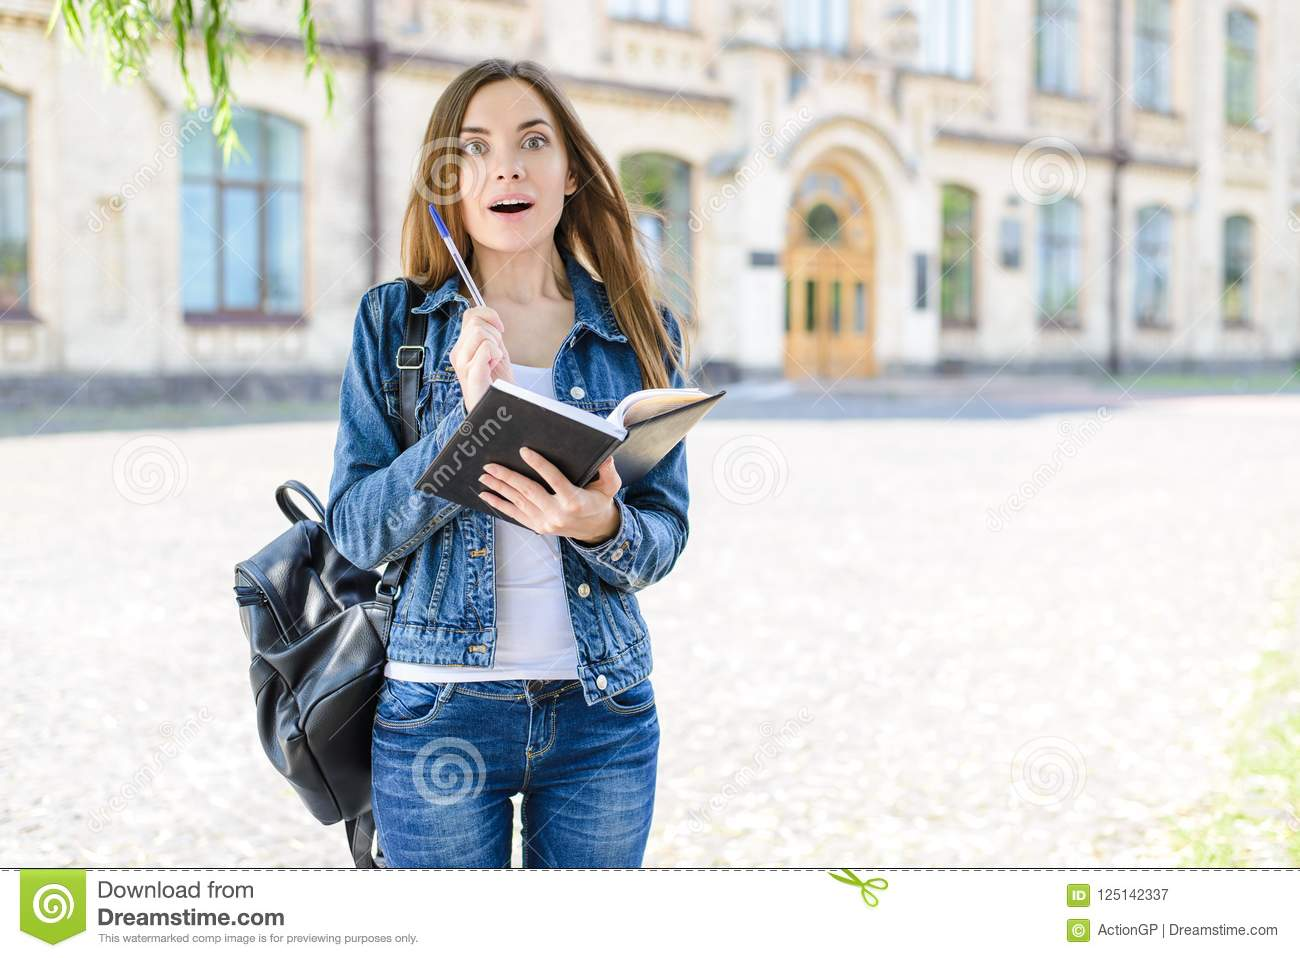 Aha moment! Test answer good emotion novelty people concept. Photo portrait of surprised excited cheerful joyful teenager holding